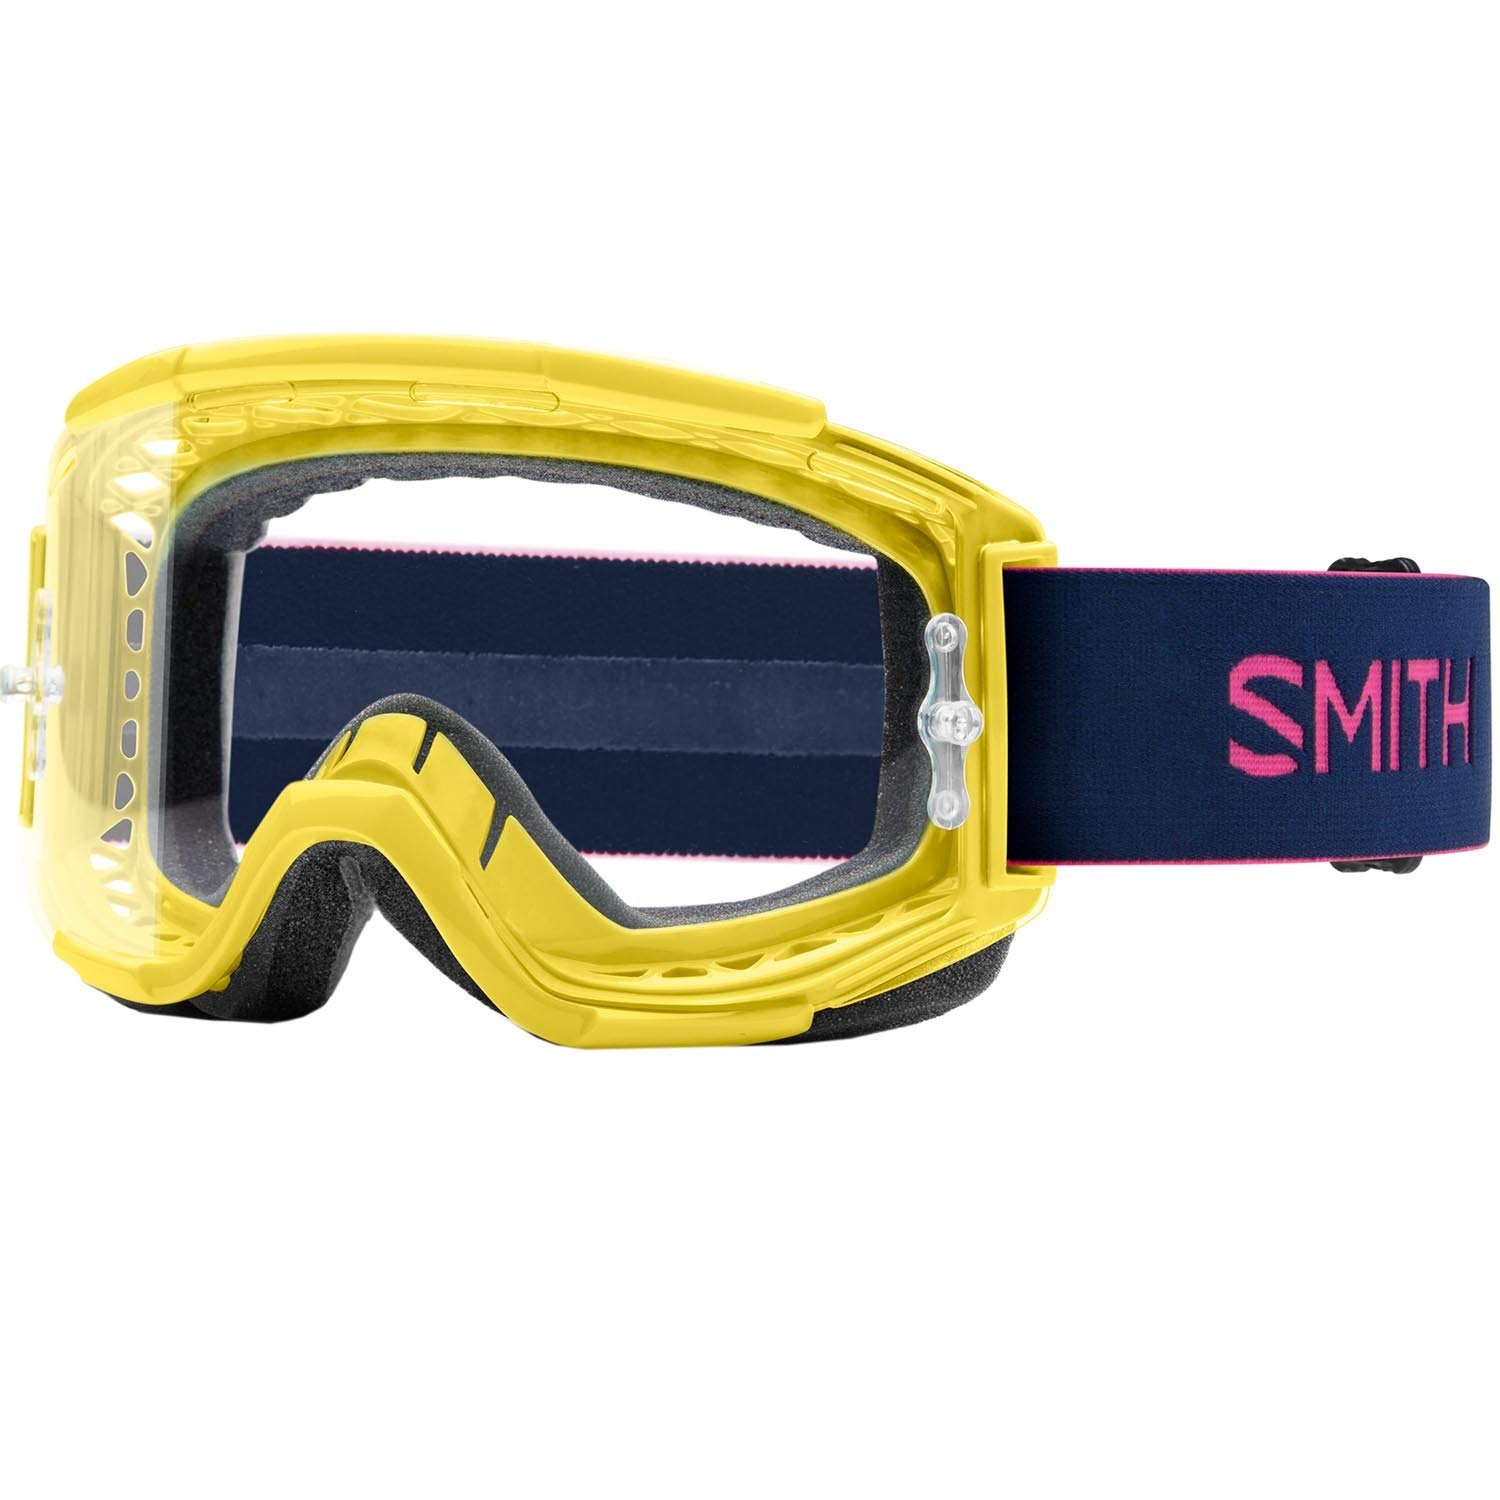 Smith Optics 2016 Squad MTB Off Road Goggles – Reactor Frame